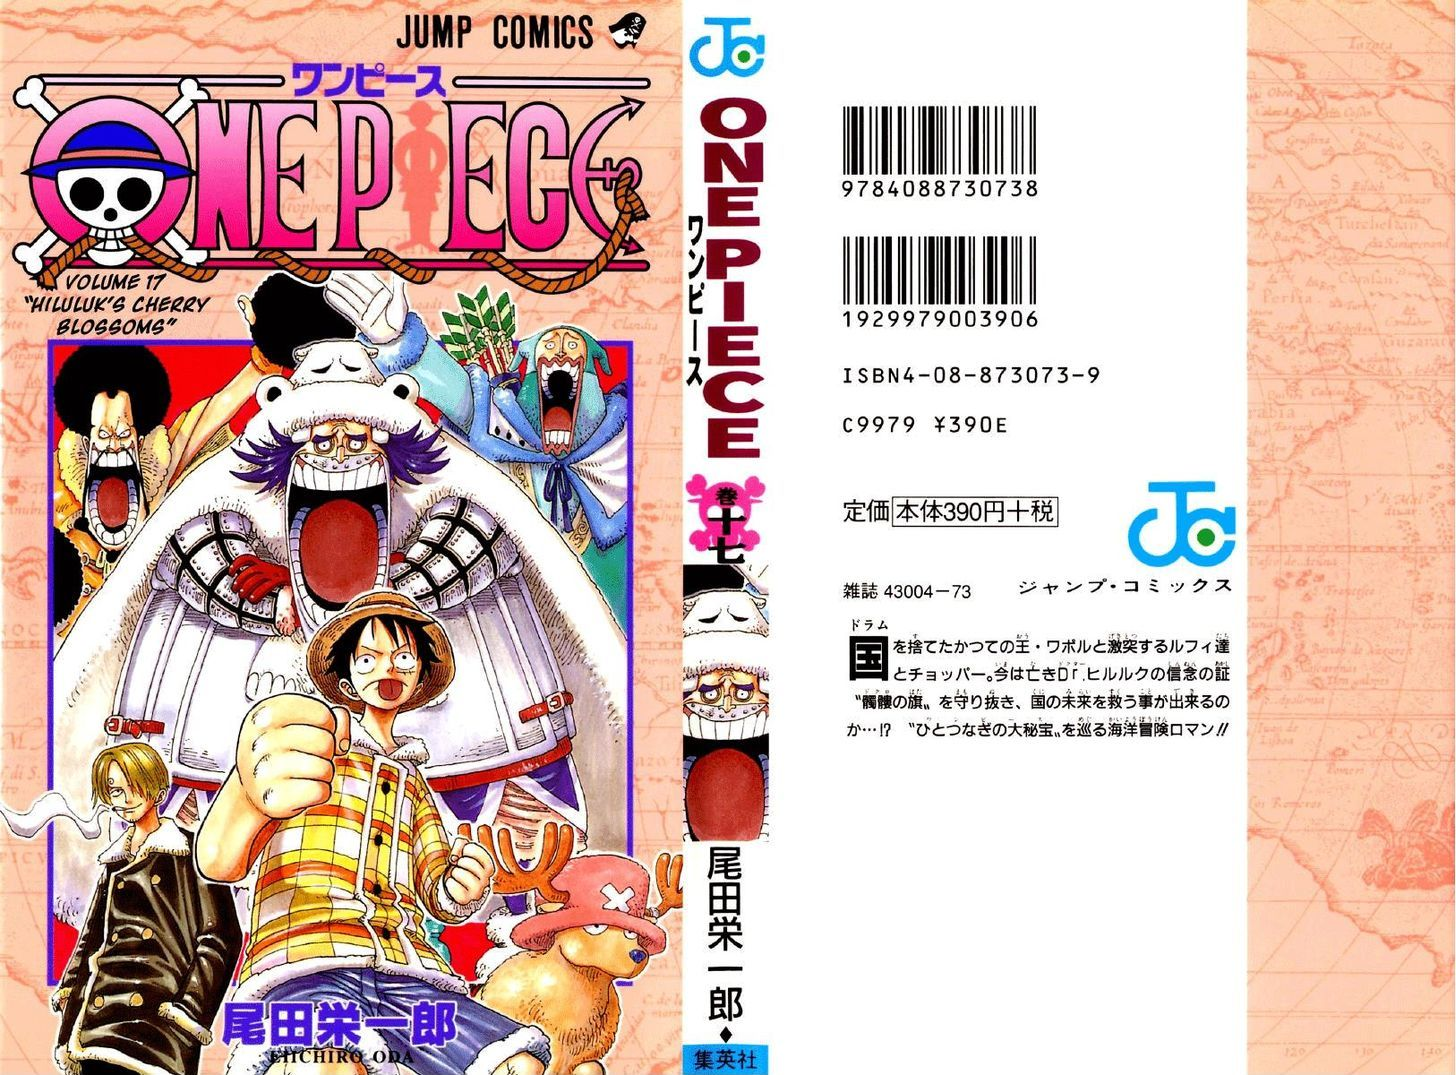 https://im.nineanime.com/comics/pic9/32/96/2494/OnePiece1460404.jpg Page 1